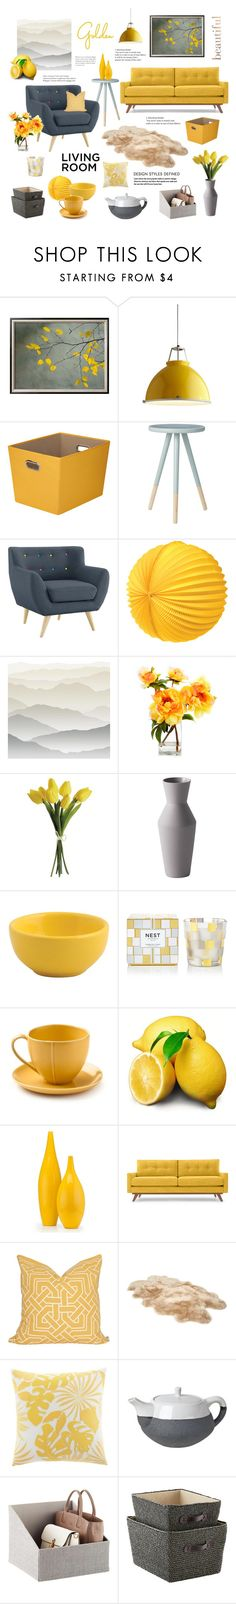 """""""Grey & Yellow"""" by magnolialily-prints ❤ liked on Polyvore featuring interior, interiors, interior design, home, home decor, interior decorating, Original BTC, Honey-Can-Do, Cultural Intrigue and York Wallcoverings"""